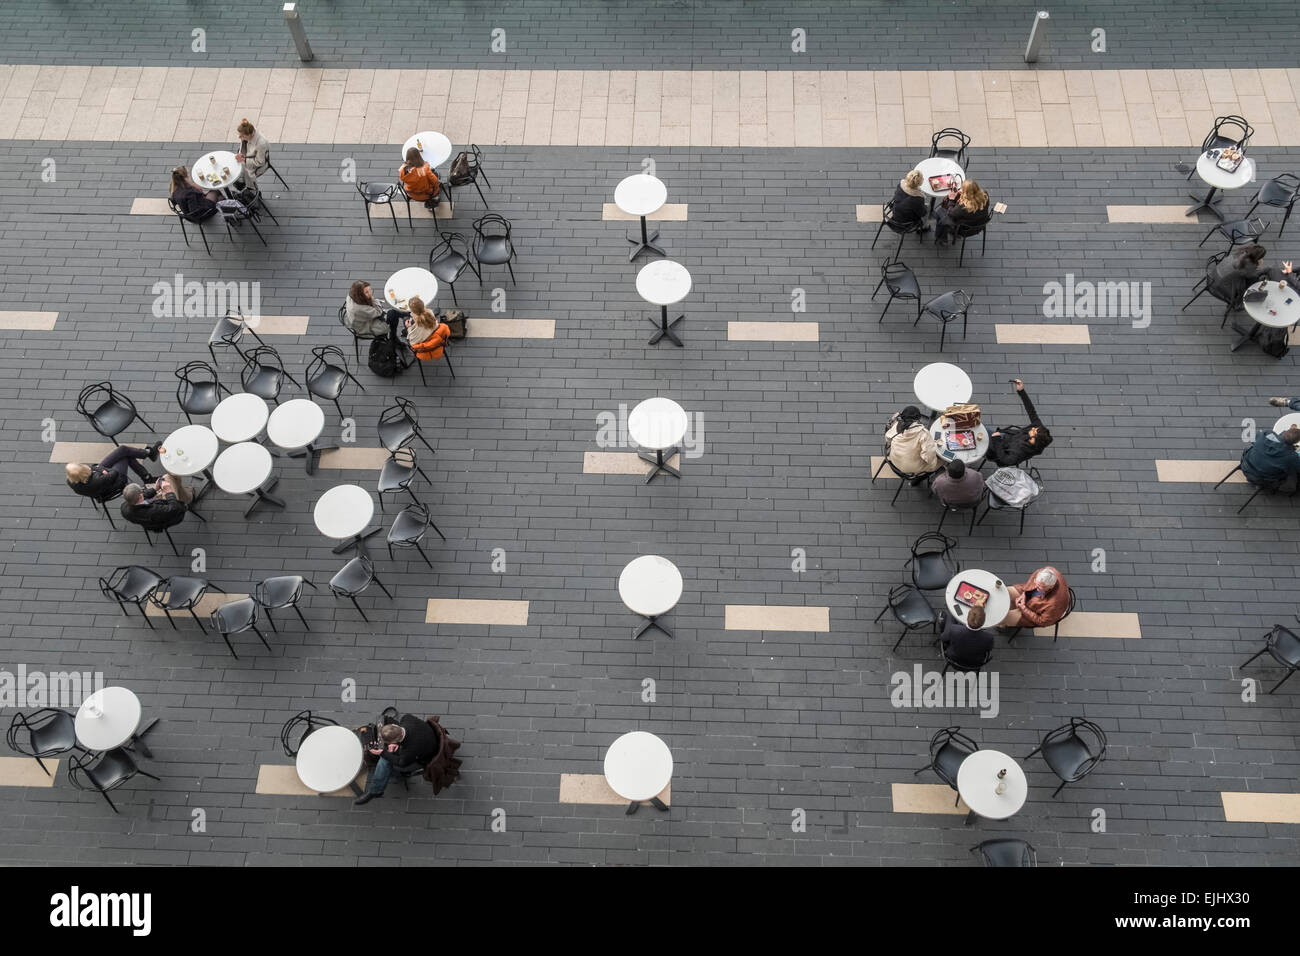 Aerial View Of People Sitting At Tables On Southbank London Viewed From Above